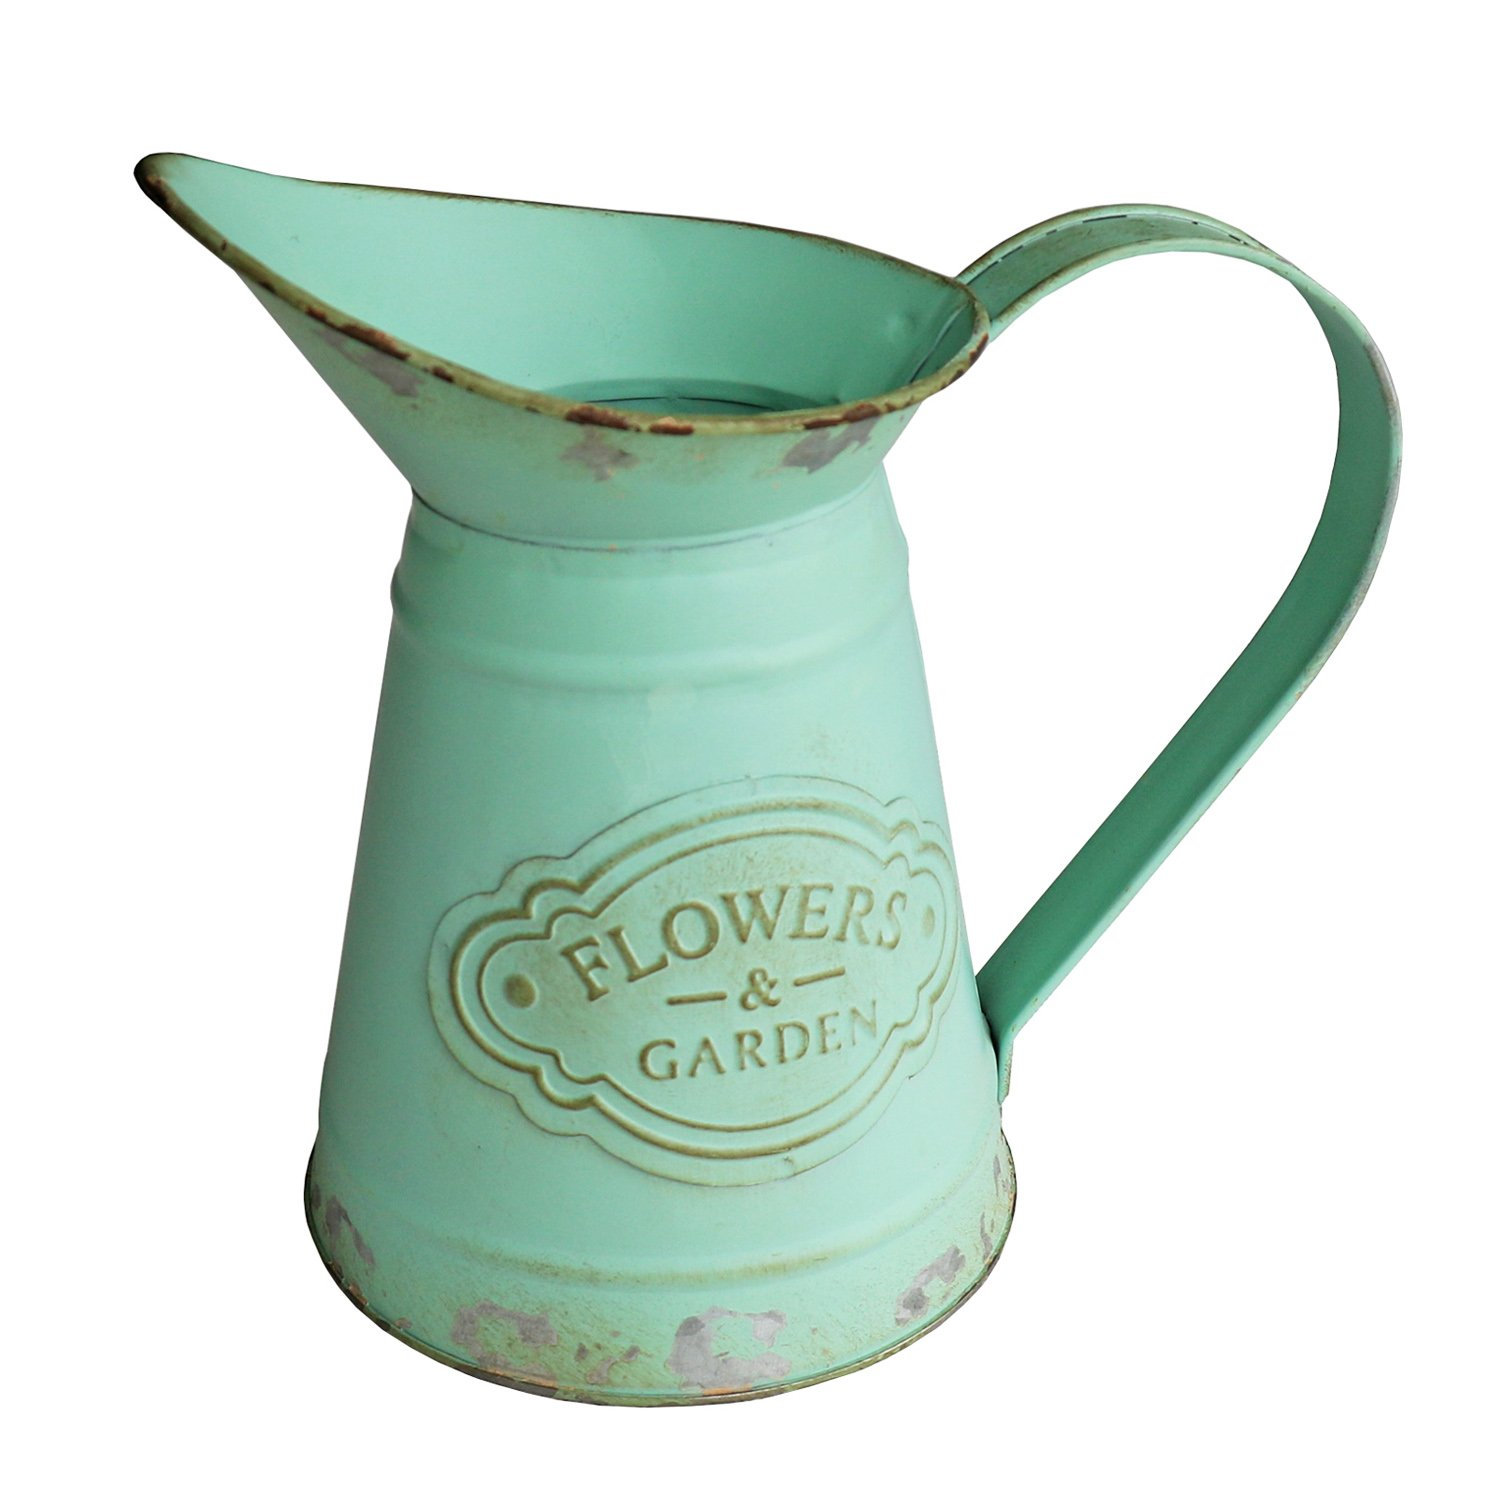 HyFanStr Shabby Chic Green Painted Mini Metal Vase Flower Pitcher Jug Duck Mouth Decorative